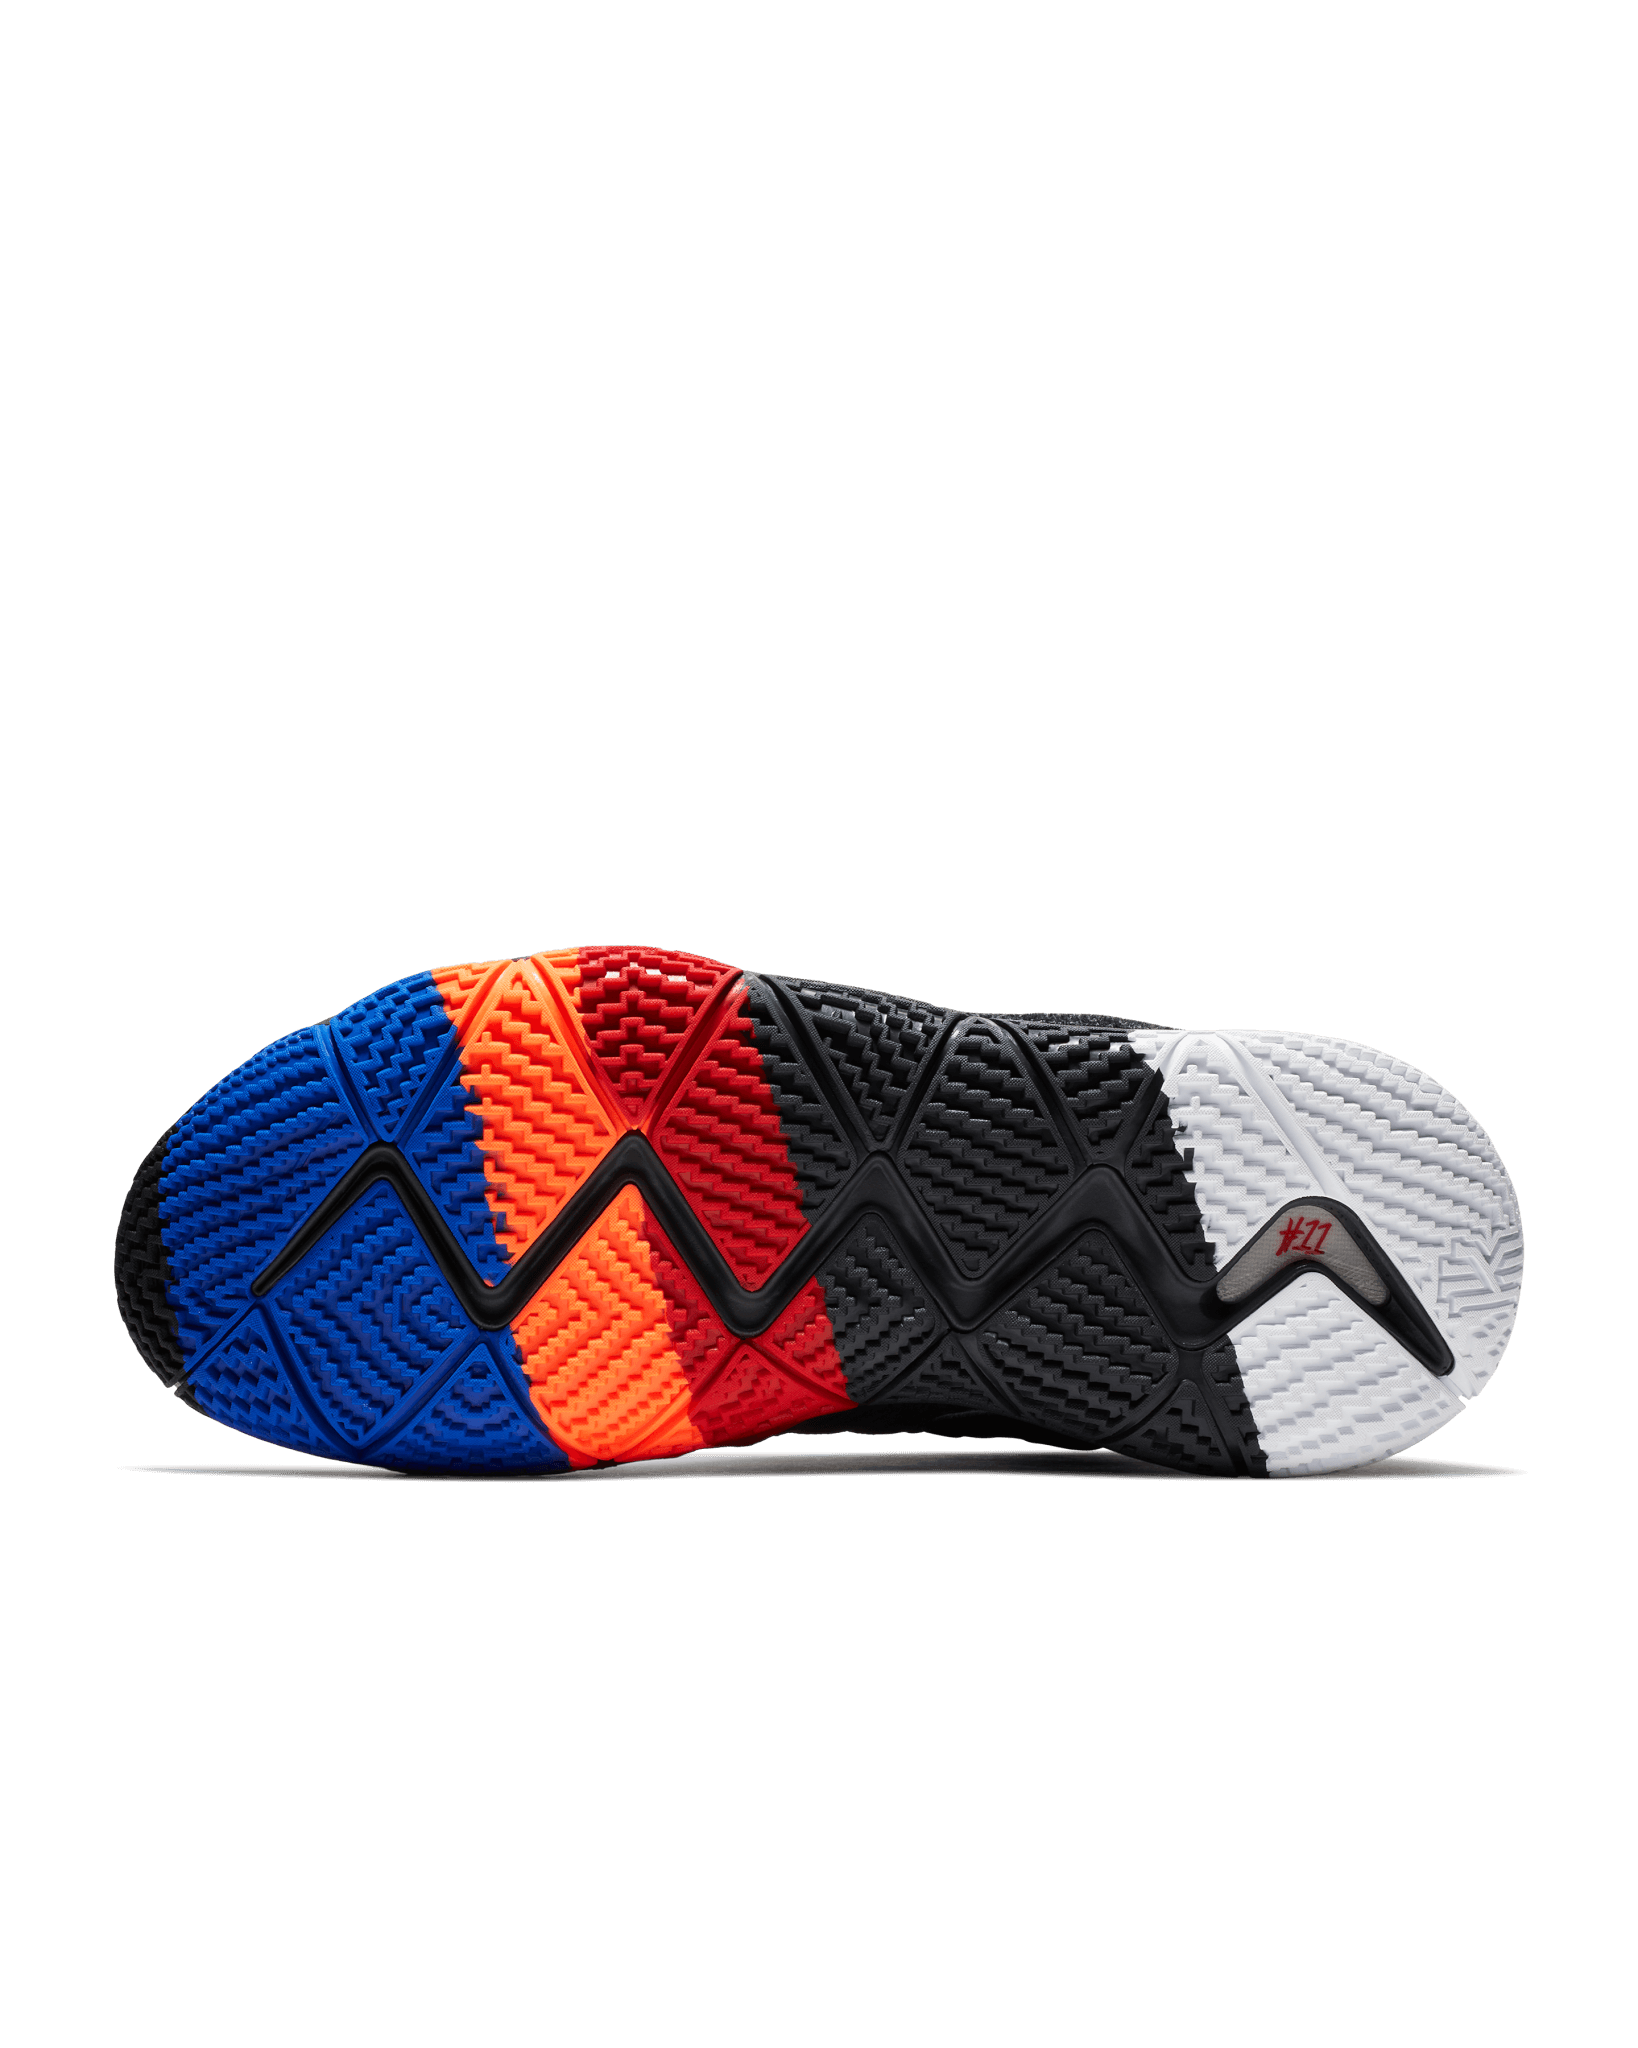 55879fa6821c Nike Kyrie 4 Performance Review